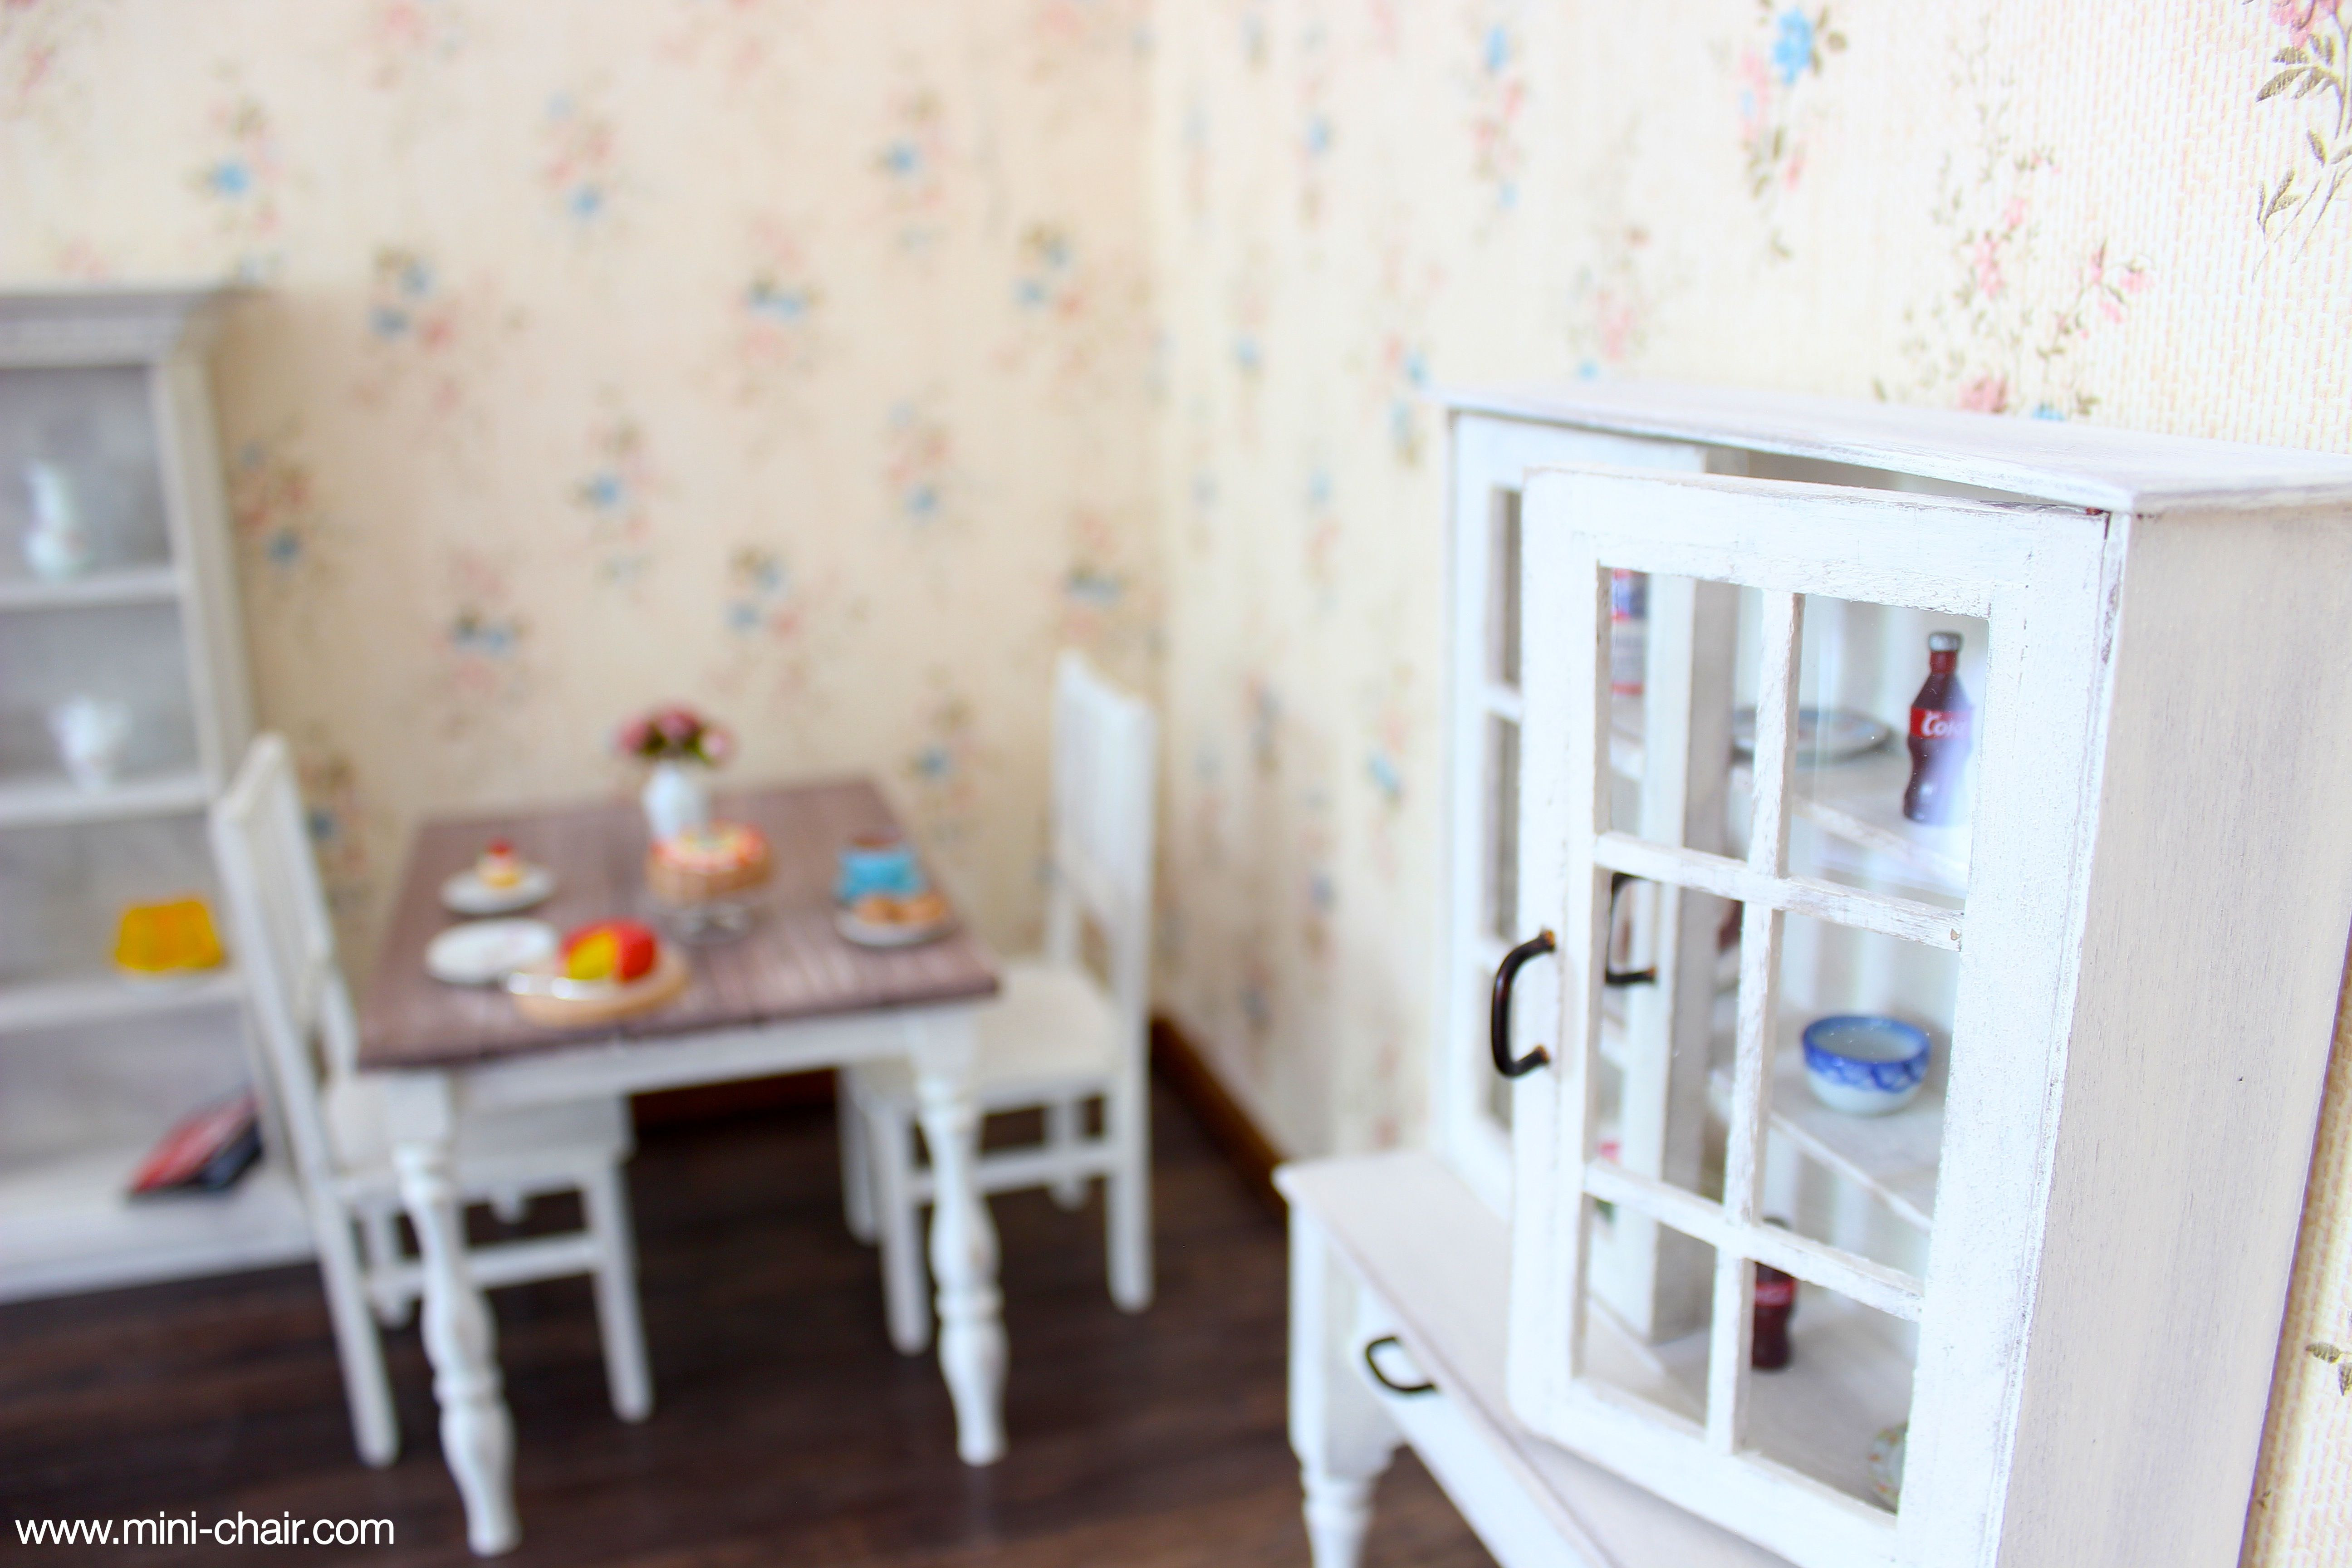 cupboard lavender from house cottages antique paintedfurniture cottage painted pin vintage